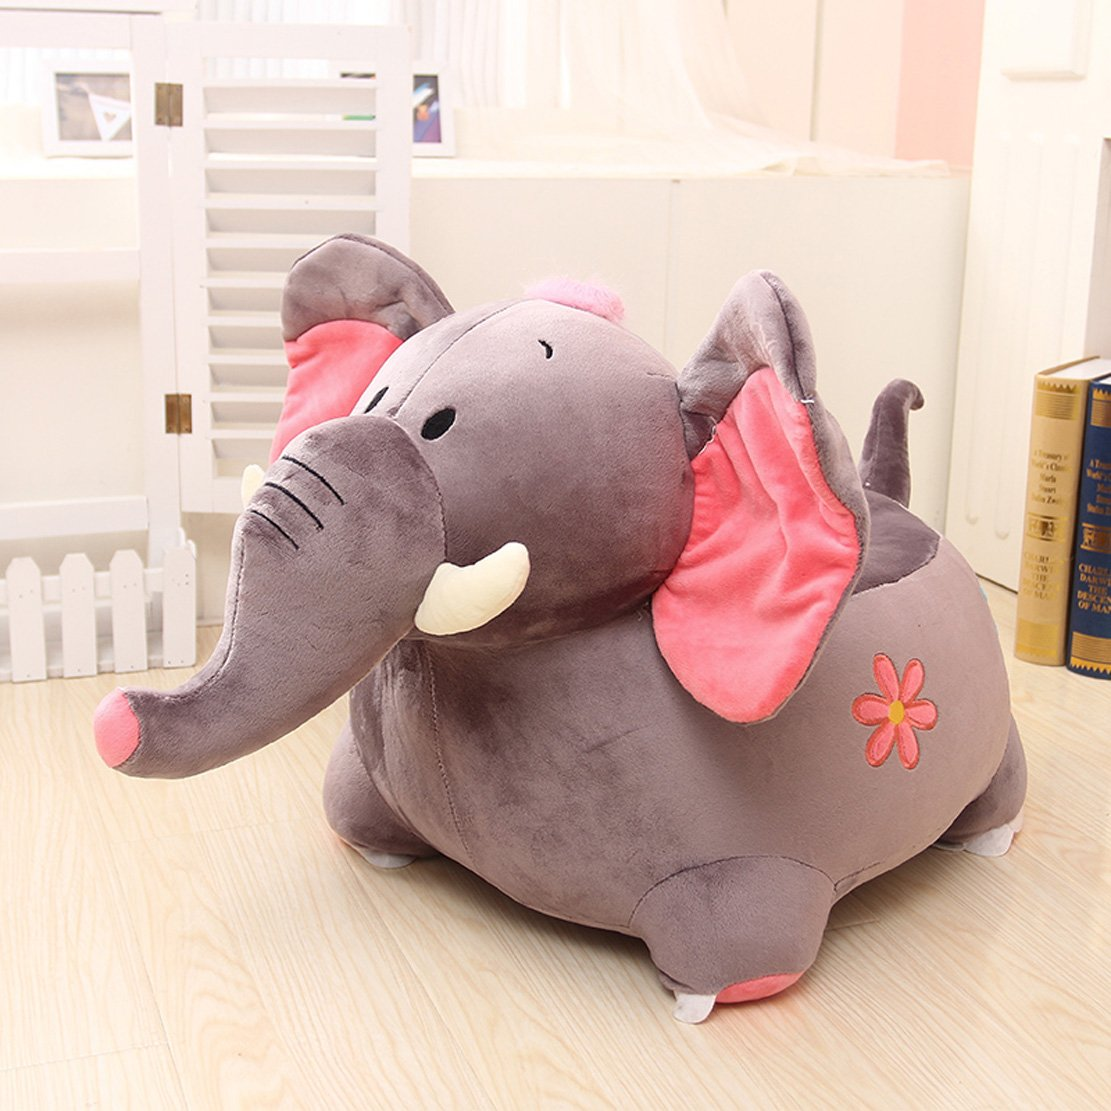 MAXYOYO Kids Plush Riding Toys Bean Bag Chair Seat for Children,Cartoon Cute Animal Plush Sofa Seat,Soft Tatami Chairs,Birthday Gifts for Boys and Girls (gray elephant)